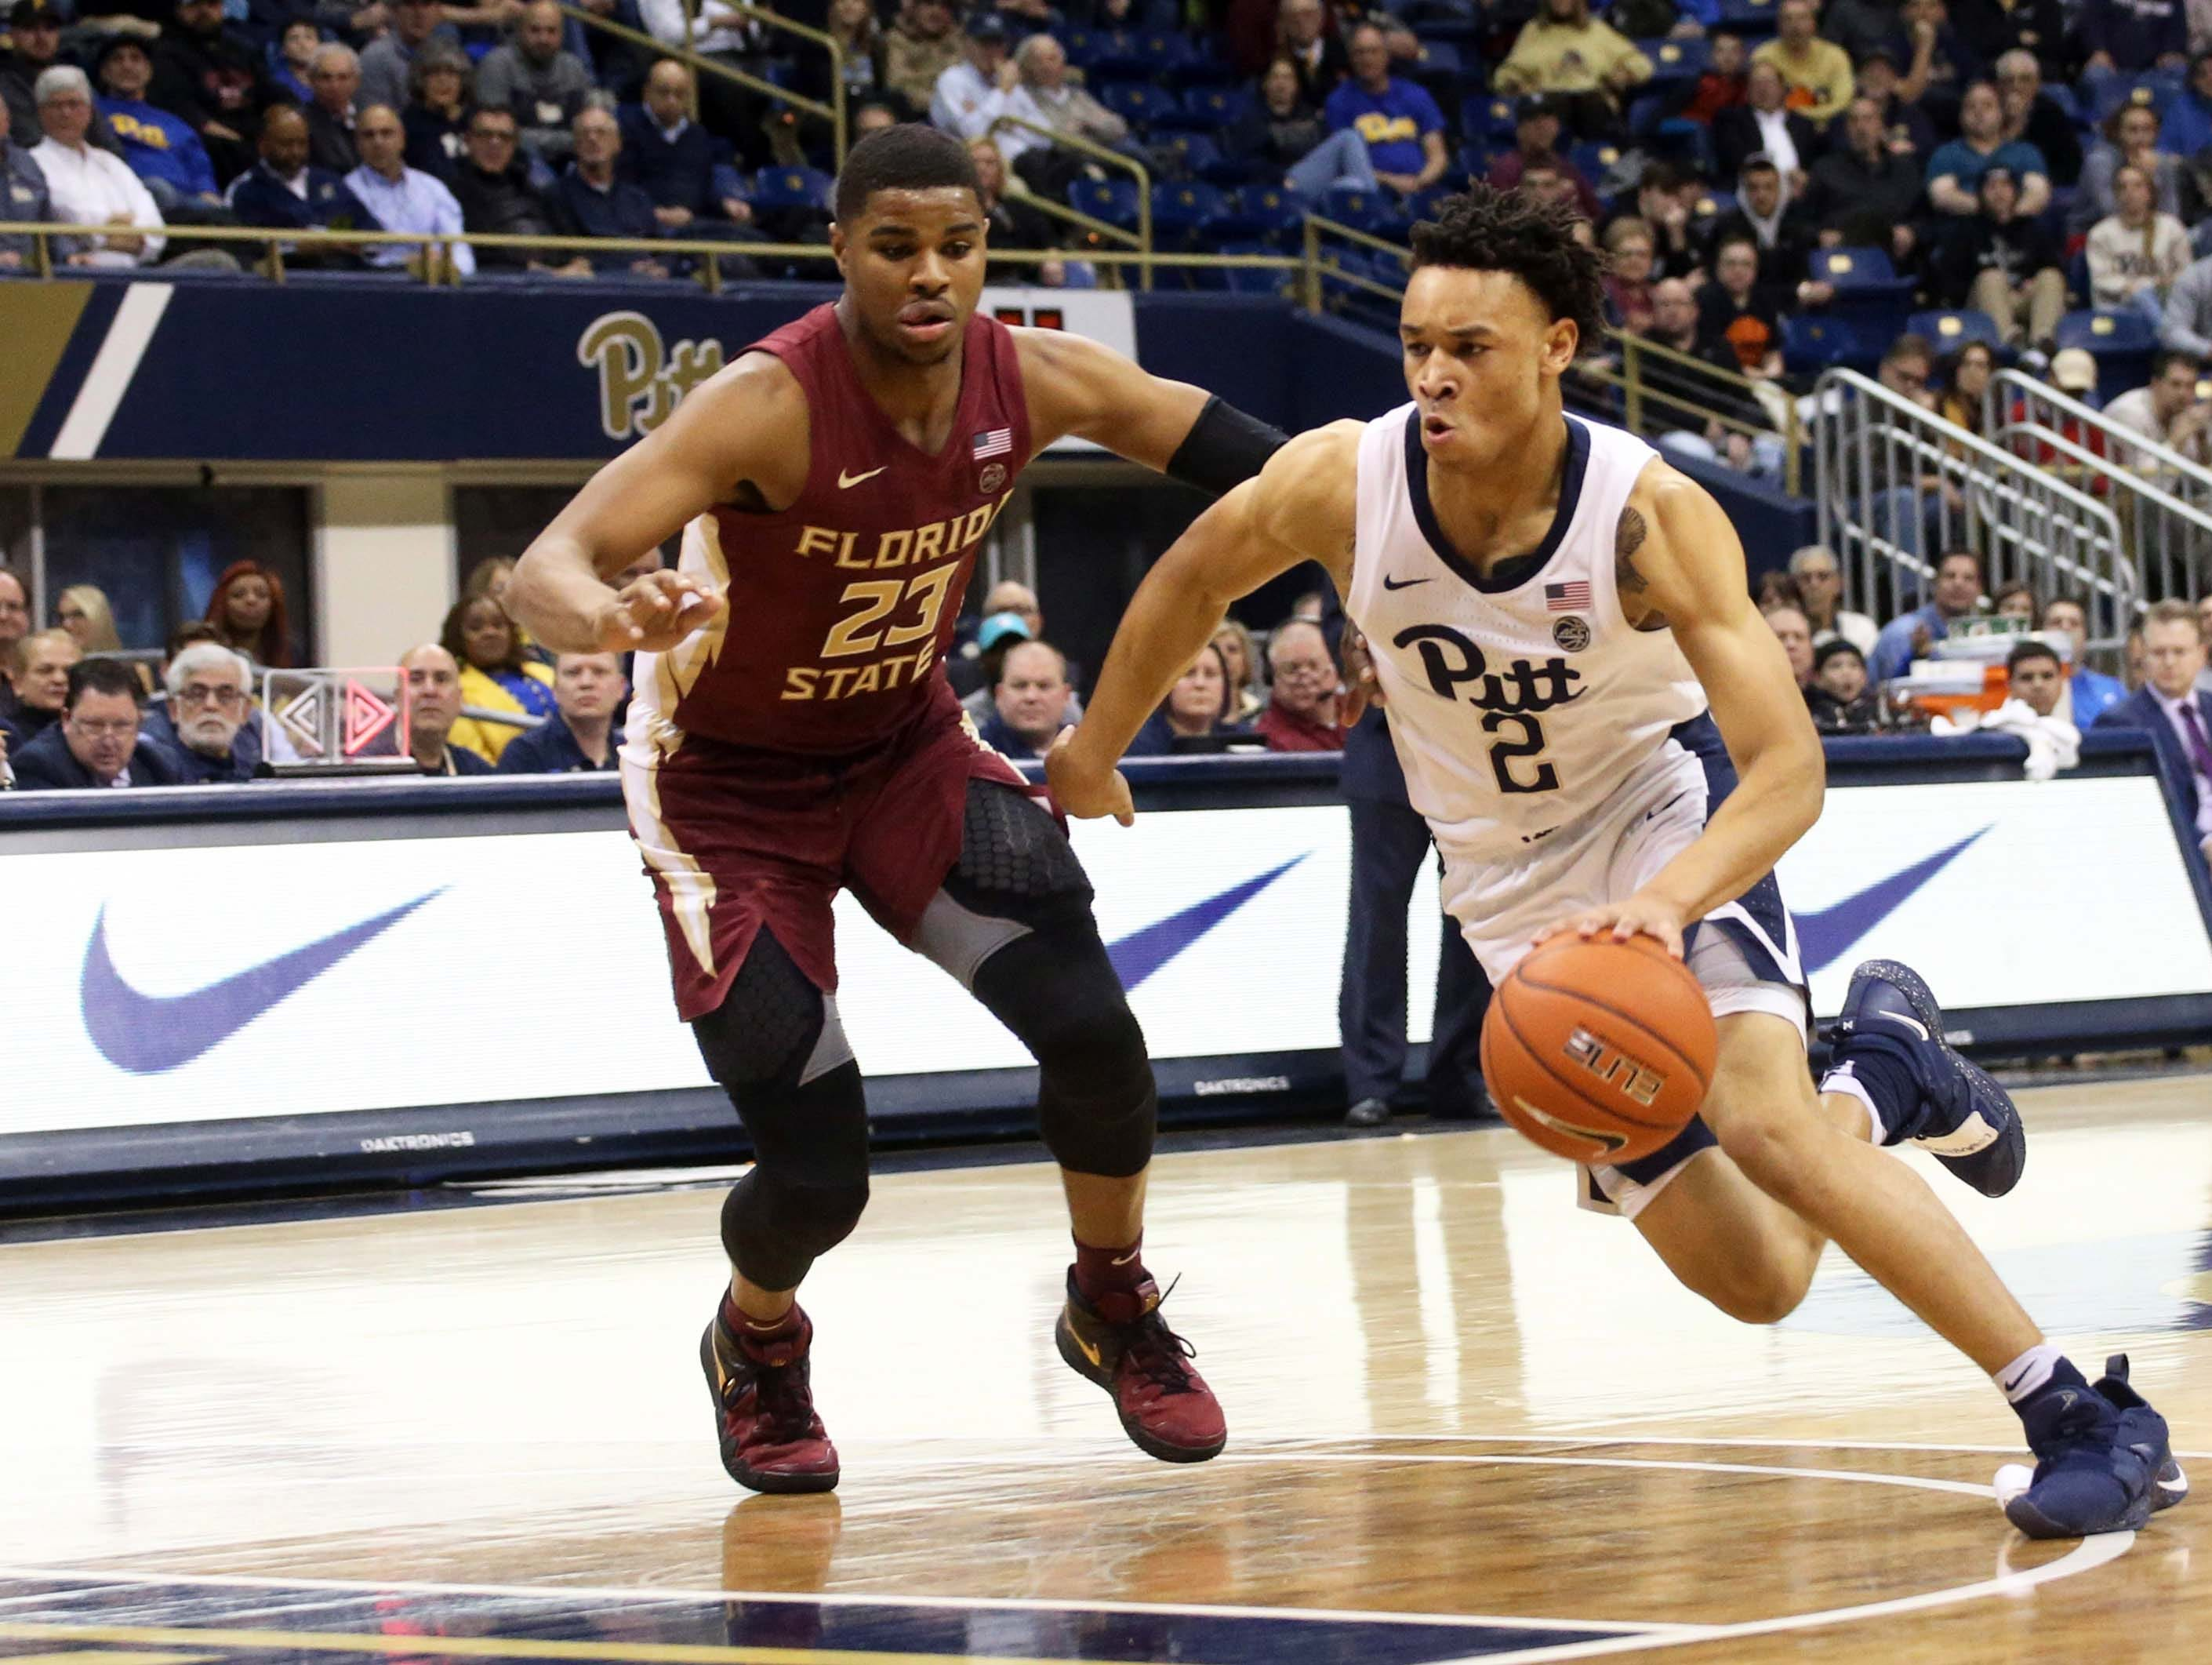 Jan 14, 2019; Pittsburgh, PA, USA; Pittsburgh Panthers guard Trey McGowens (2) drives to the basket against Florida State Seminoles guard M.J. Walker (23) during the second half at the Petersen Events Center. Pittsburgh won 75-62. Mandatory Credit: Charles LeClaire-USA TODAY Sports